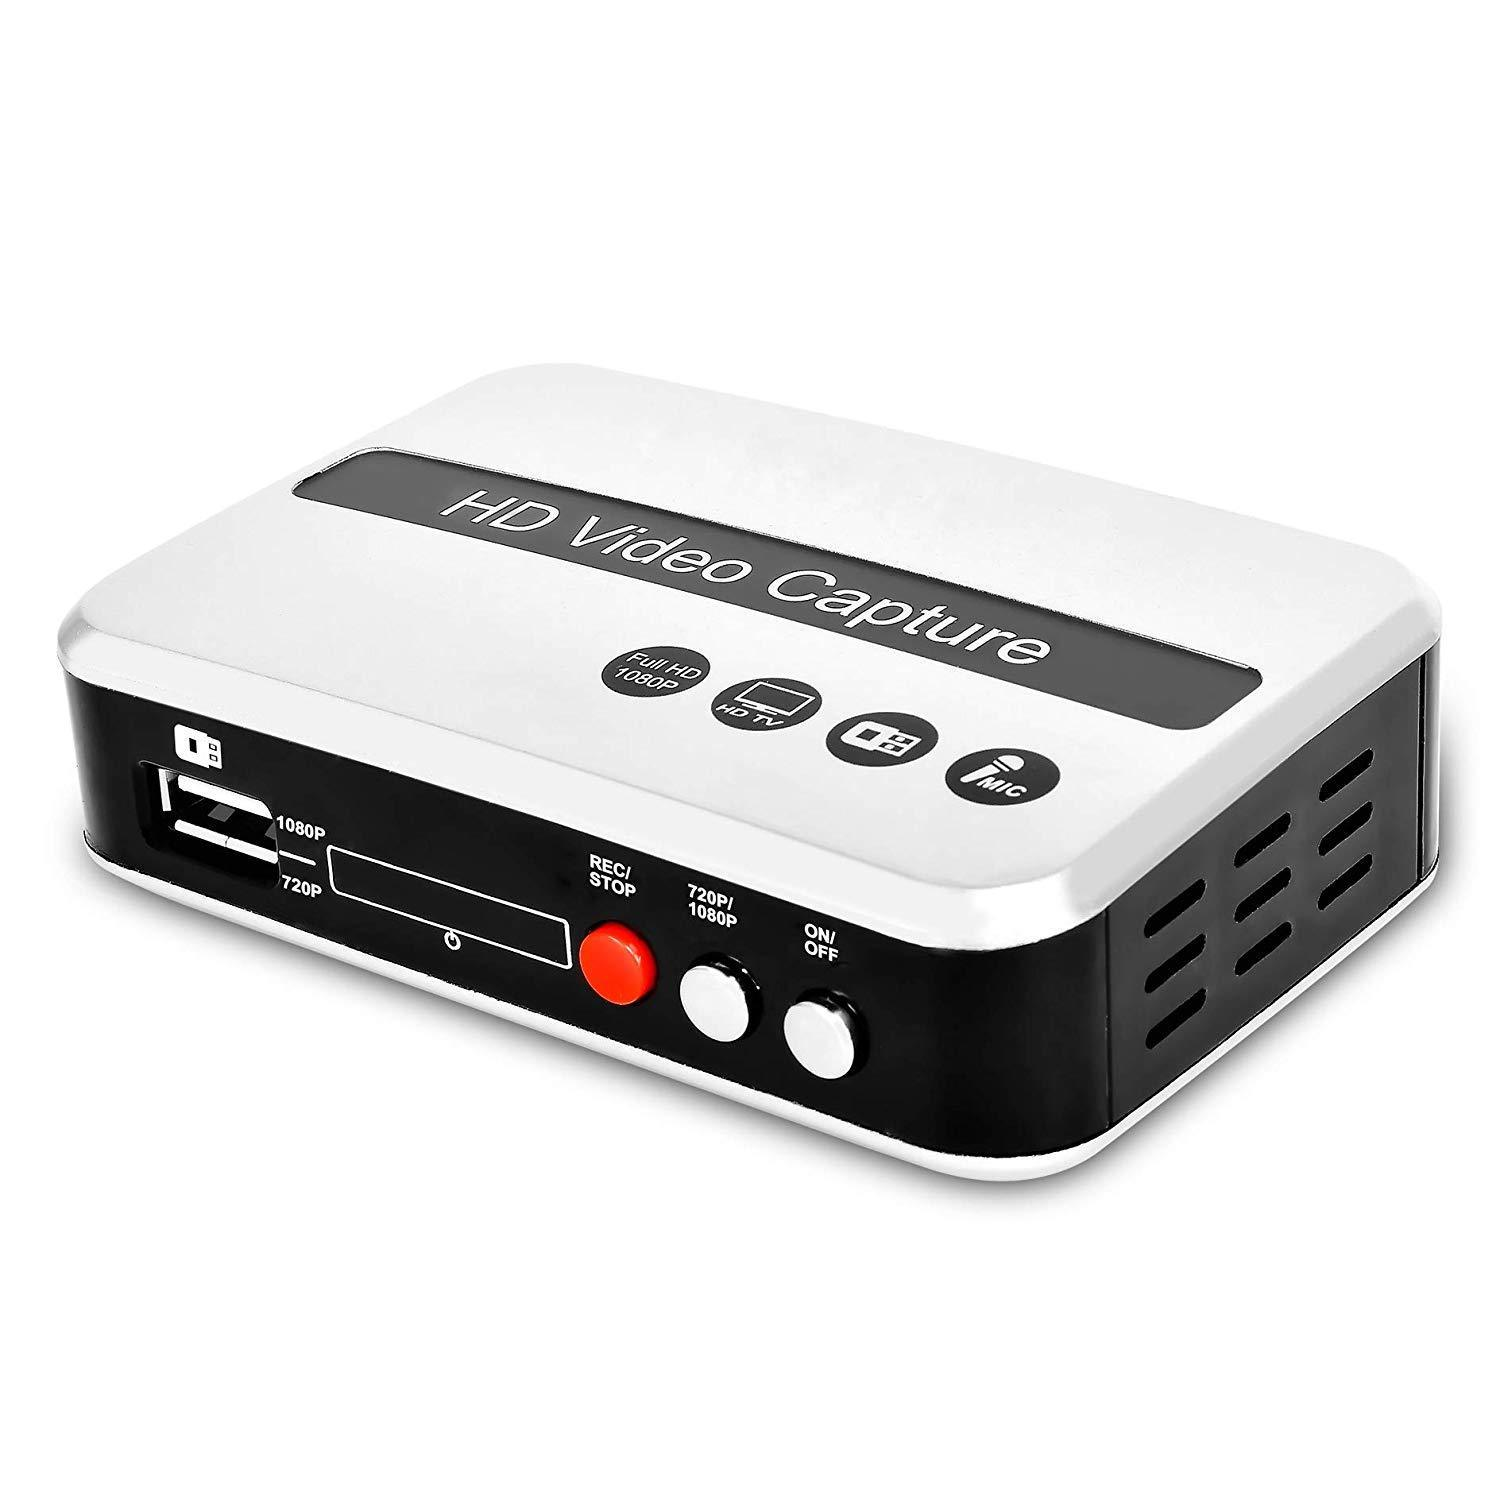 DIGITNOW! HD Game Capture/HD Video Capture Device, HDMI Video Converter/Adapter Recorder for PS4, Xbox One/Xbox 360,LiveTV,PVR DVR and More, Support Mic in, HDMI Input and Output, Full HD 1080P